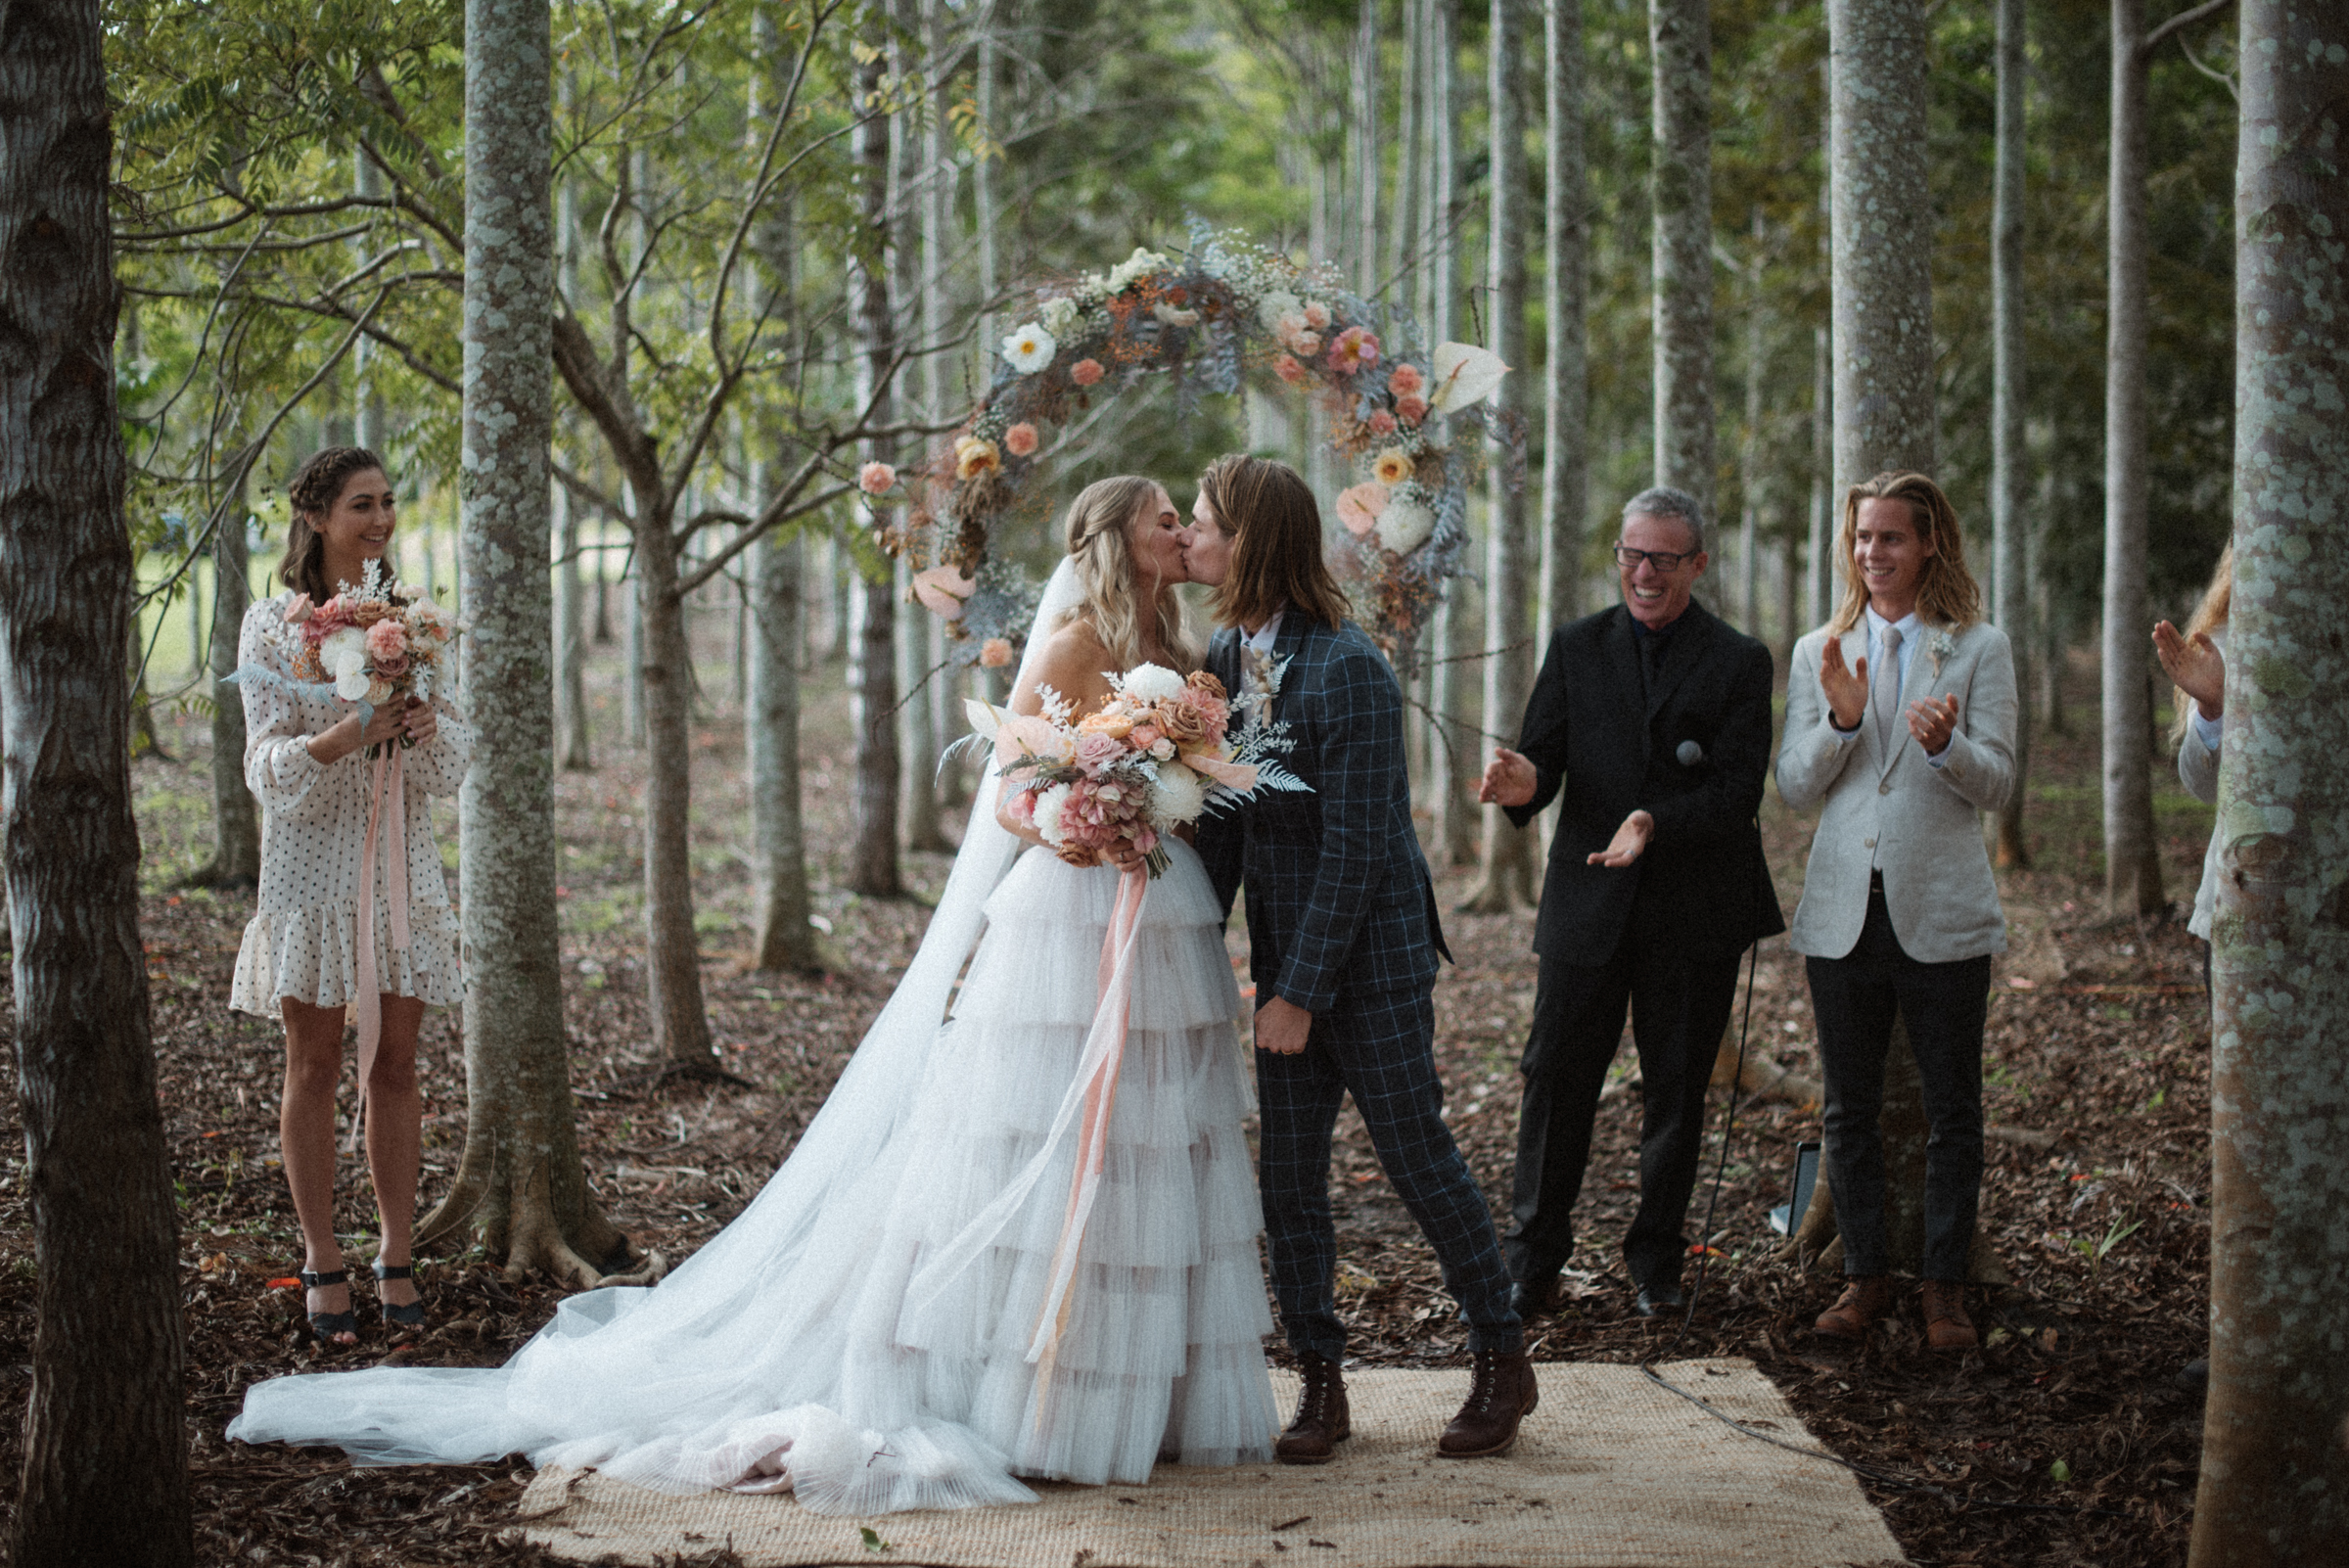 Arbor kiss - photo by Ben Sowry Photo